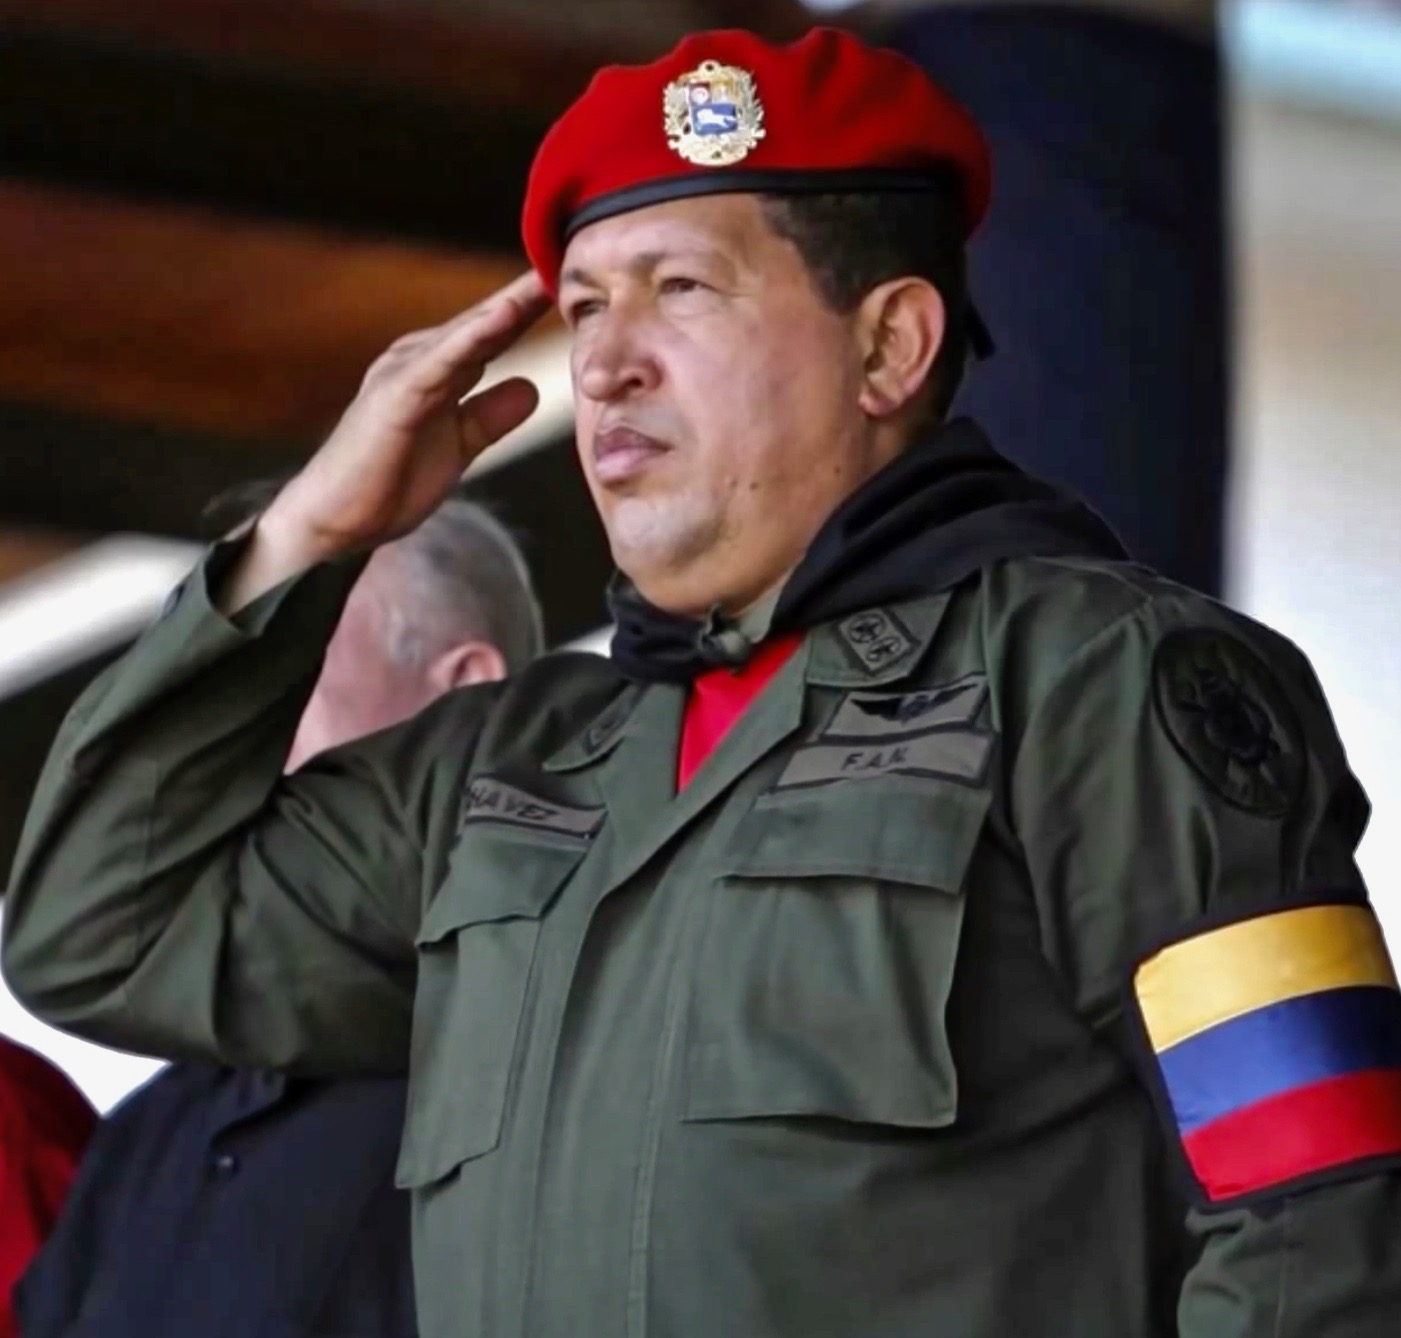 The UN helped dictator Chavez